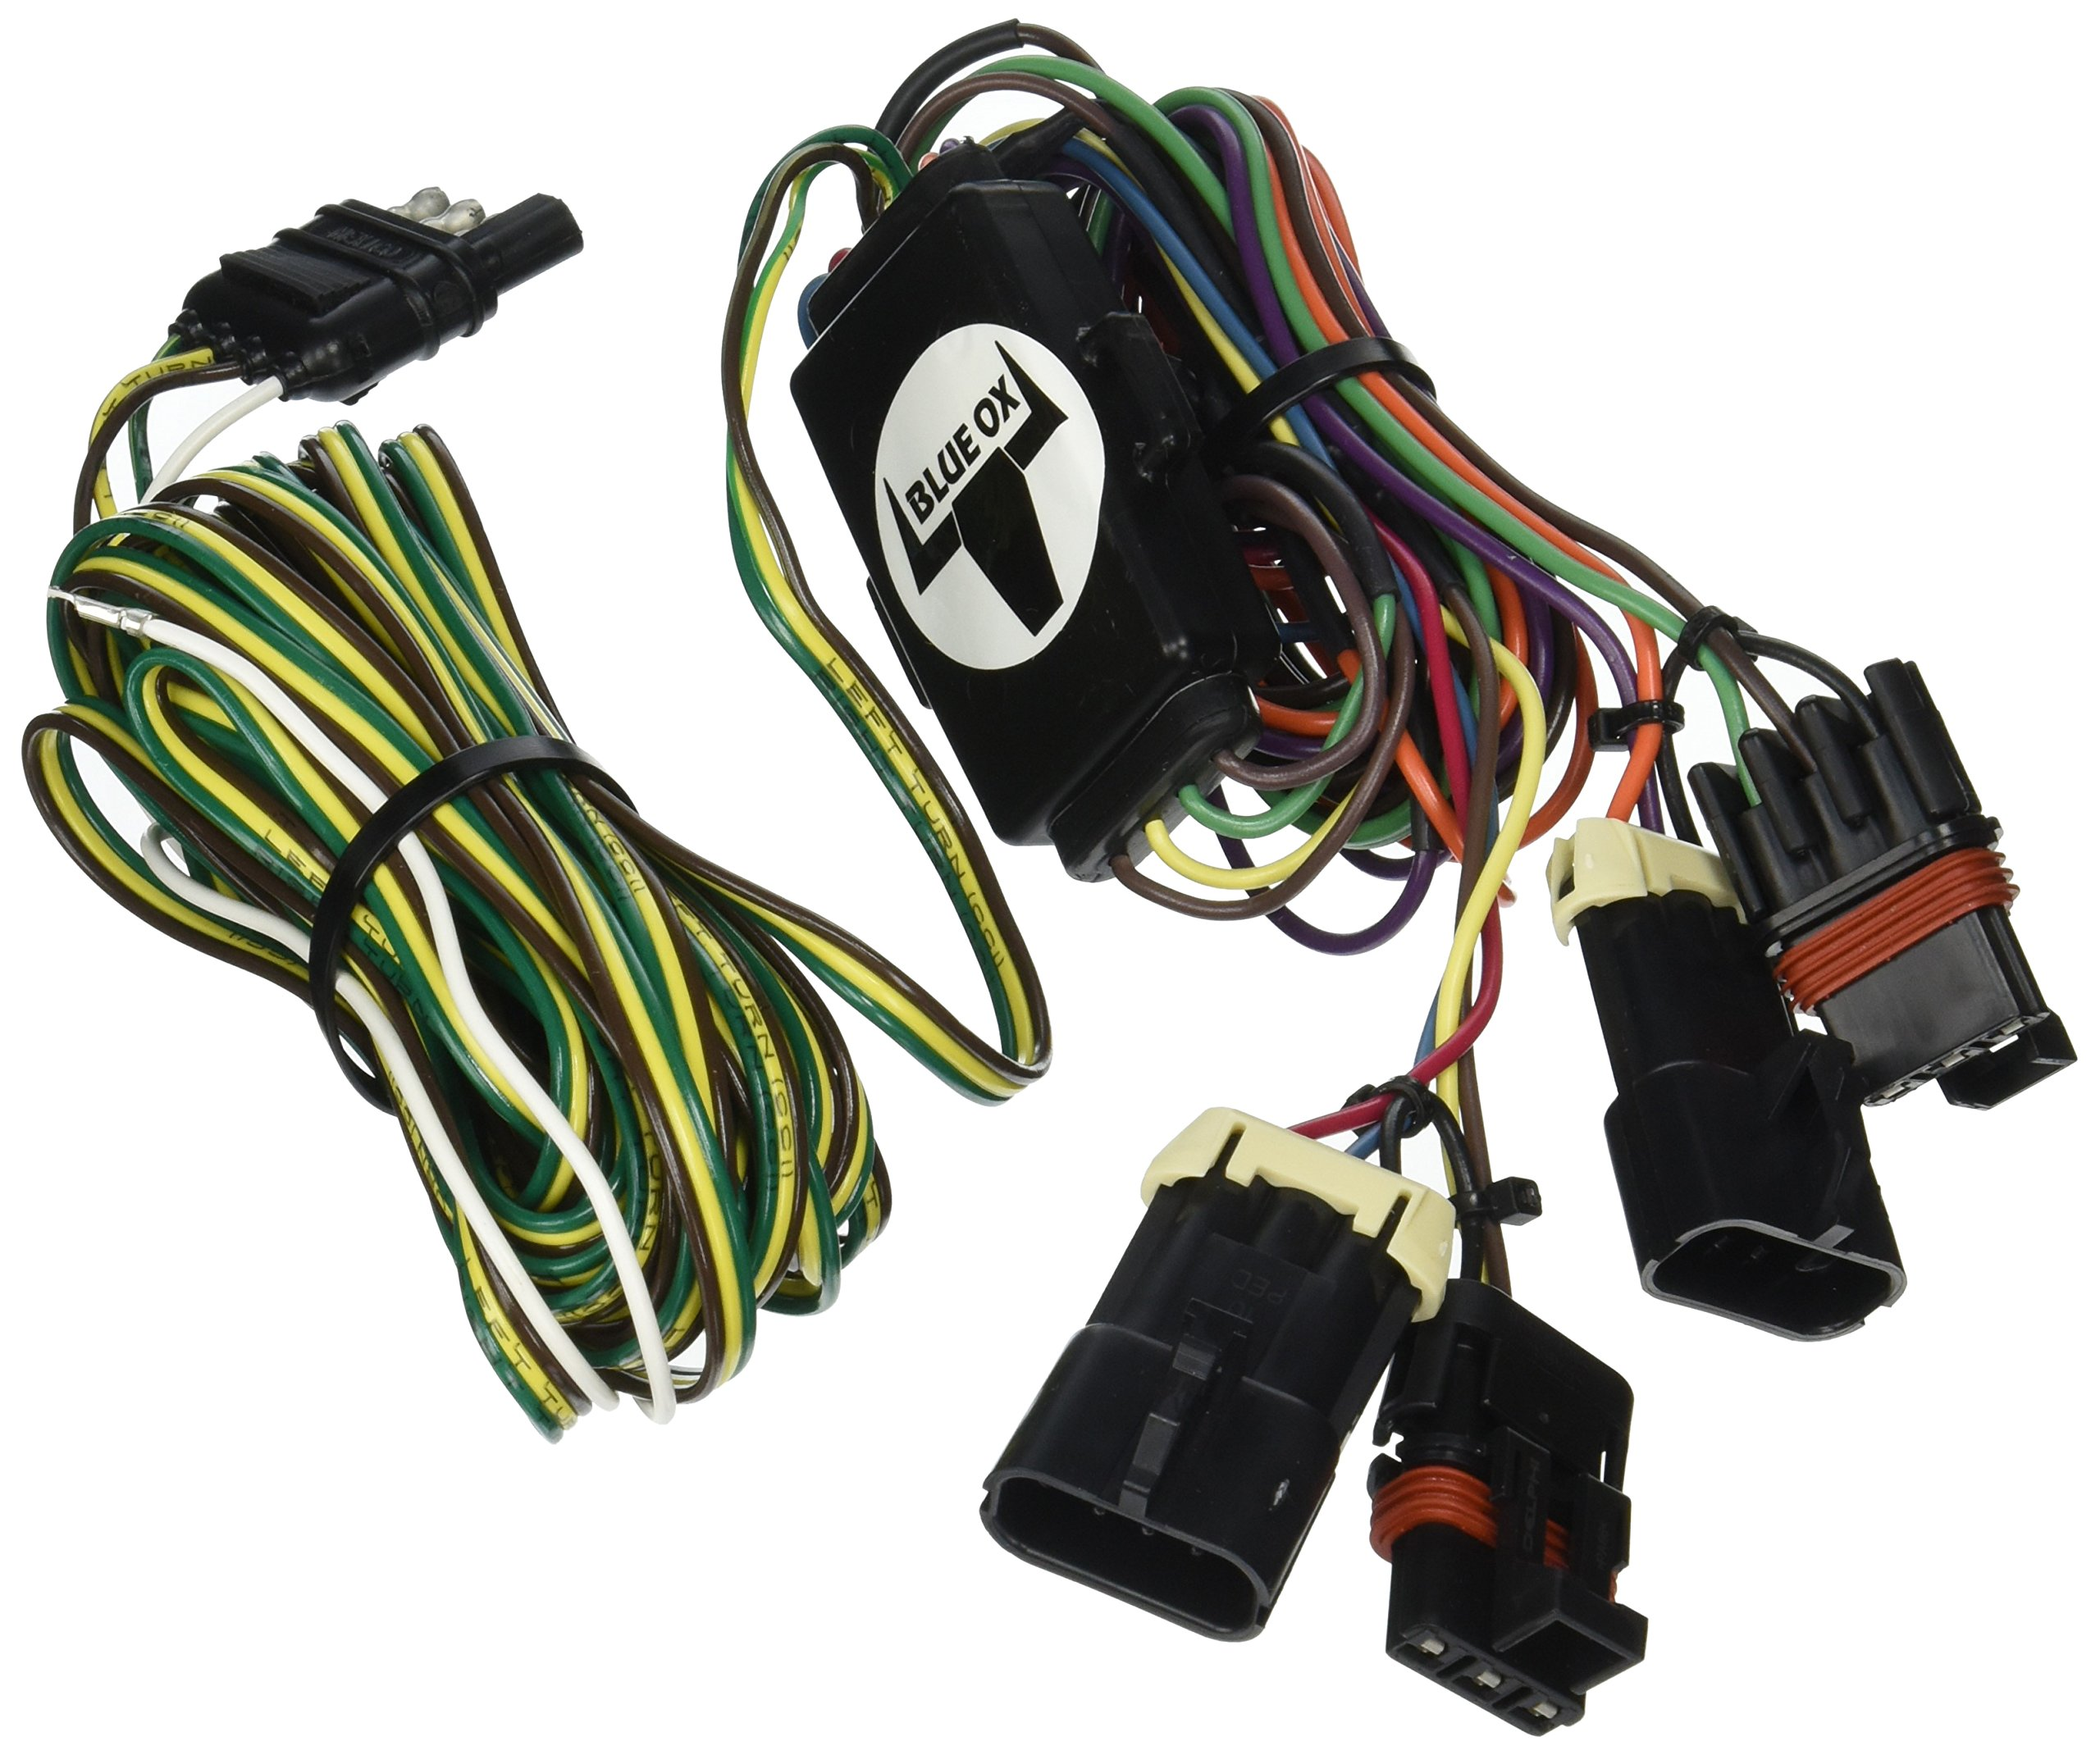 Cheap Door Contact Wiring Find Deals On Line At Power Window Mitsubishi Colt Get Quotations Blue Ox Bx88278 Ez Light Harness Kit For 4 Chevrolet Cobalt